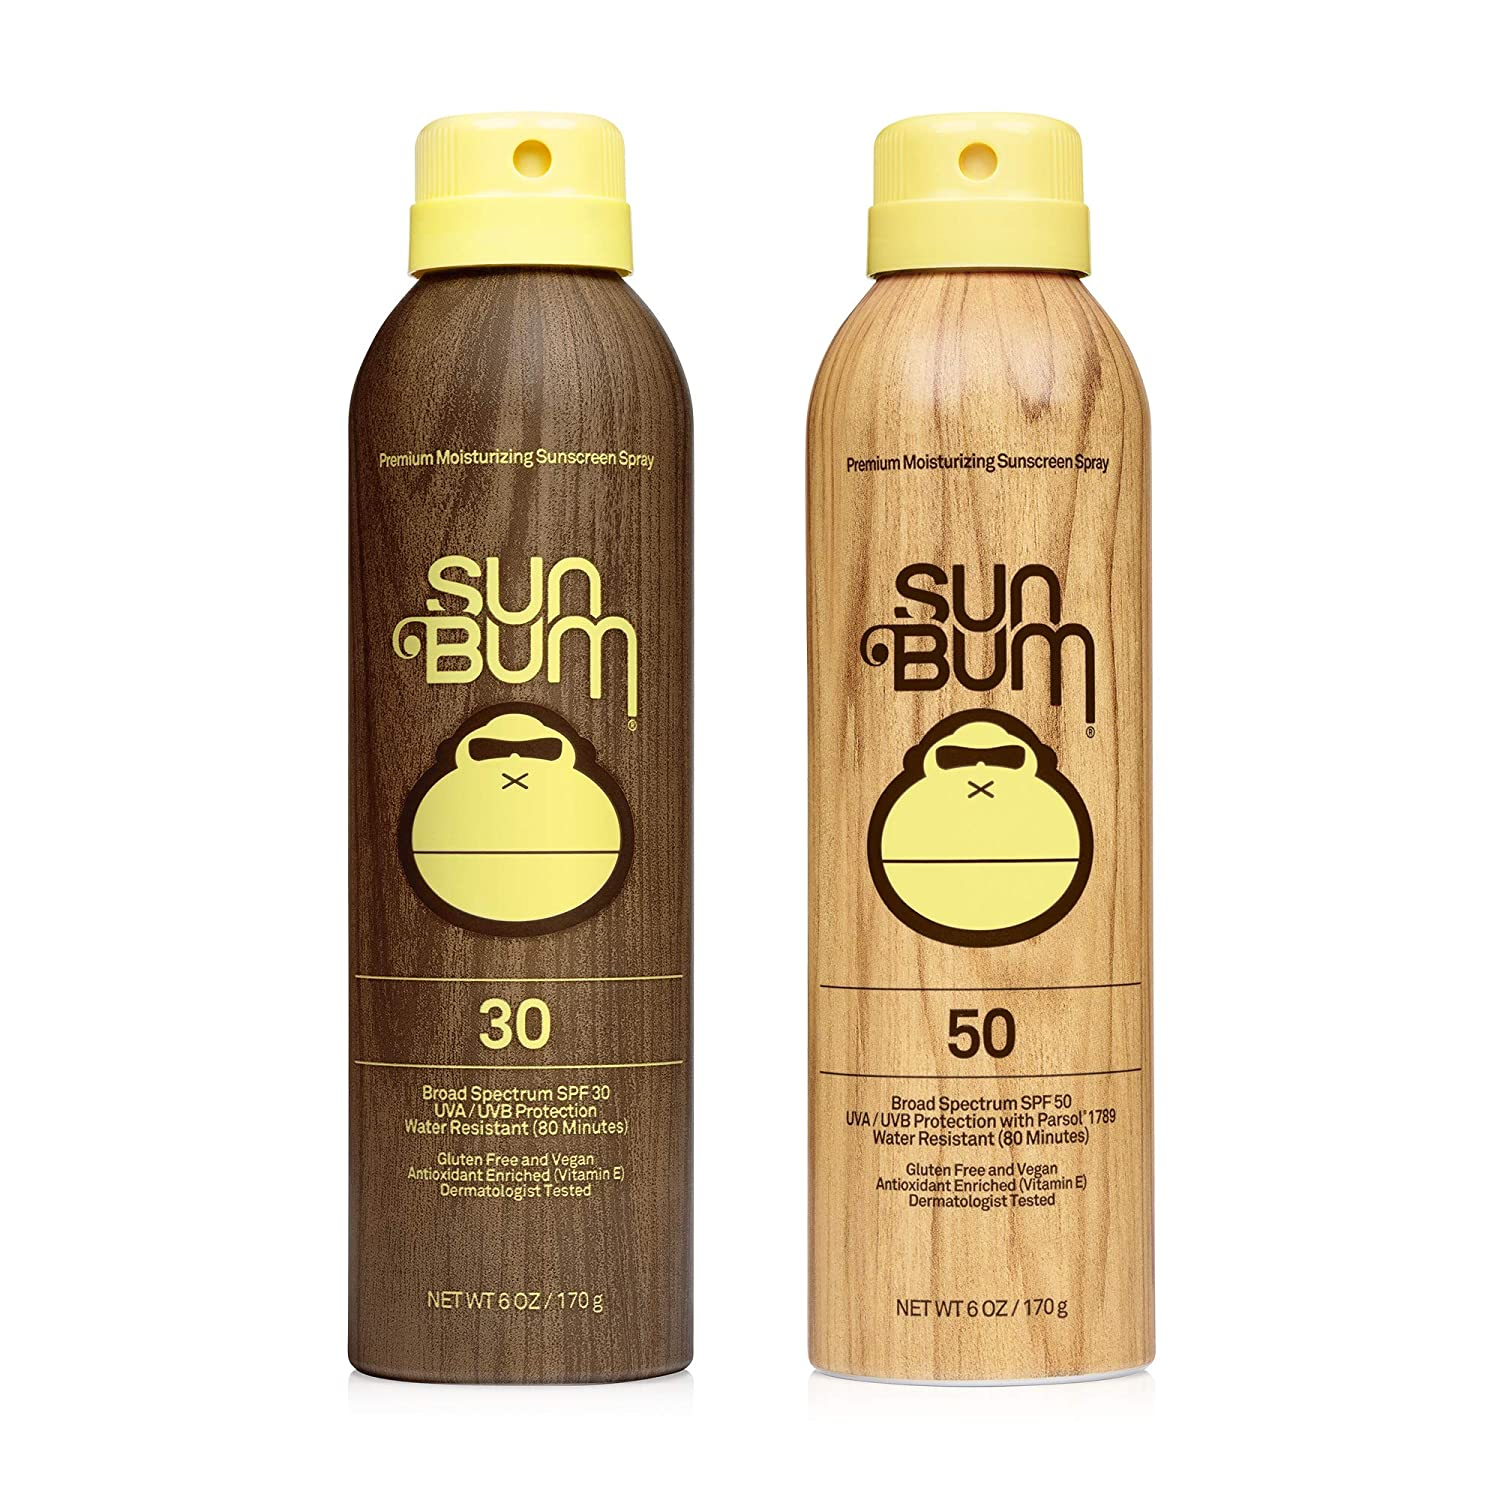 Sun Bum Sun Bum Original Spf 30 and 50 Sunscreen Spray Vegan and Reef Friendly (octinoxate & Oxybenzone Free) Broad Spectrum Moisturizing Uva/uvb Sunscreen With Vitamin E 2 Pack